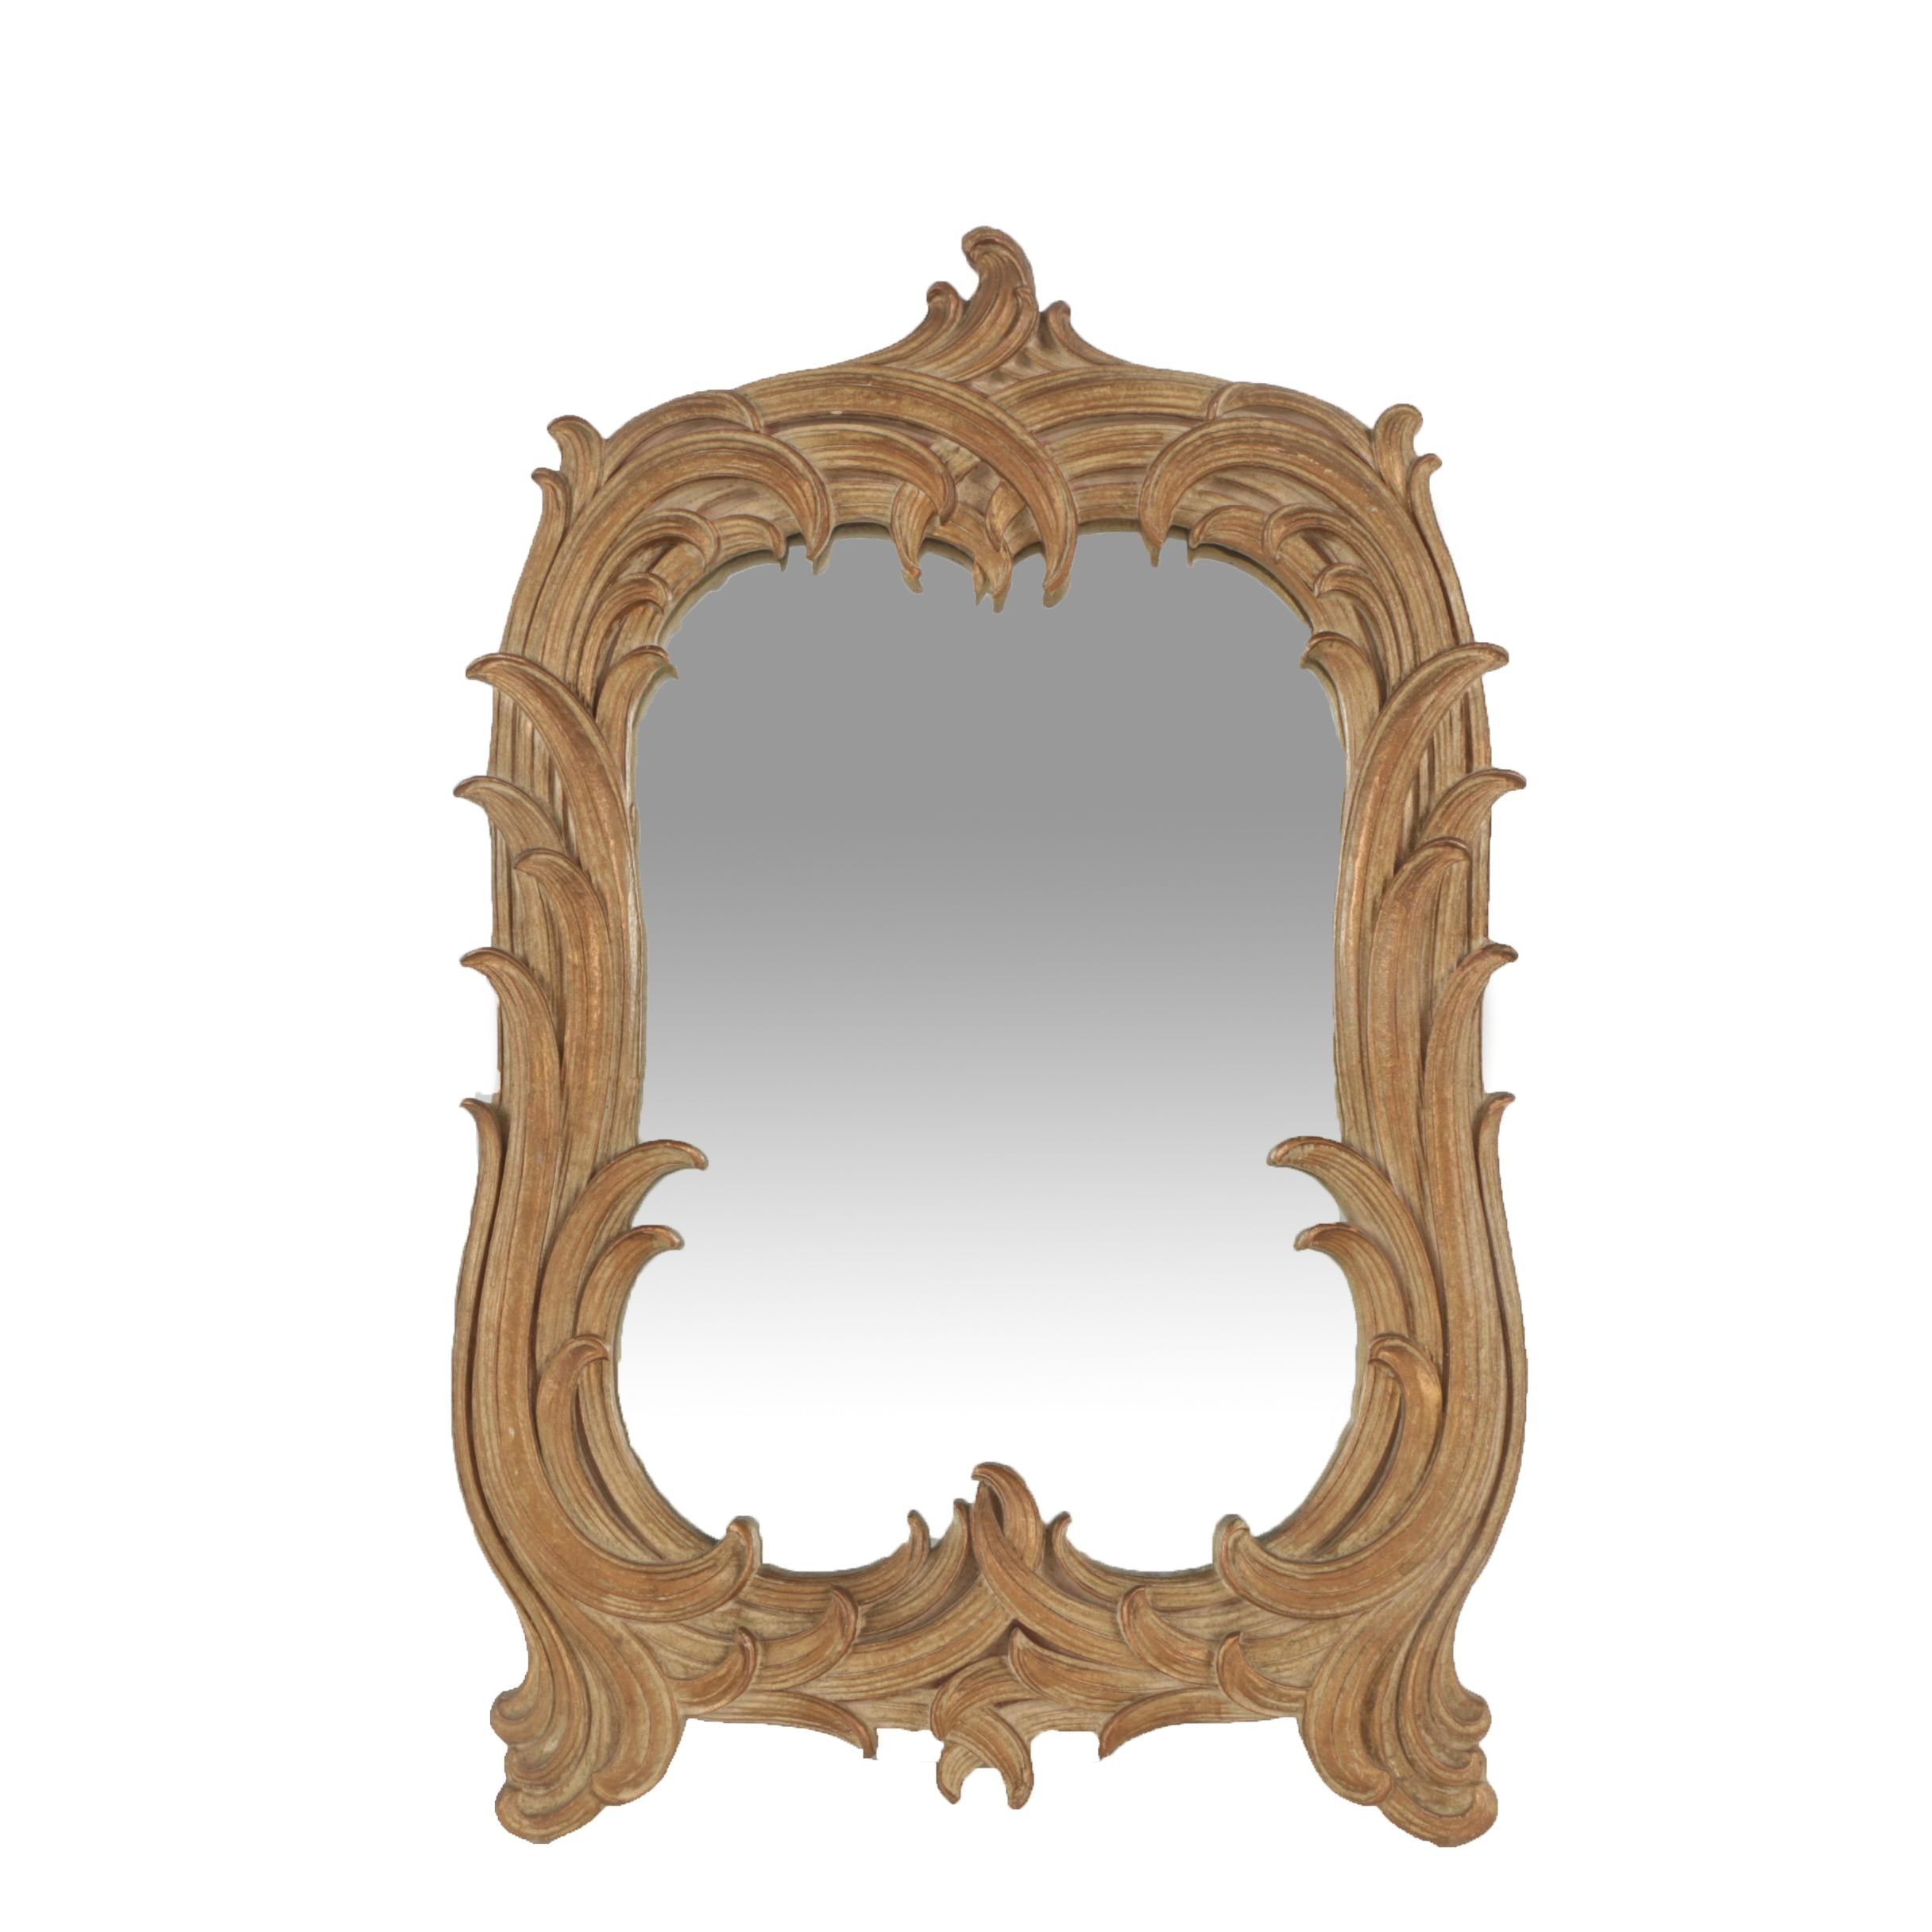 Baroque Style Wooden Framed Wall Mirror